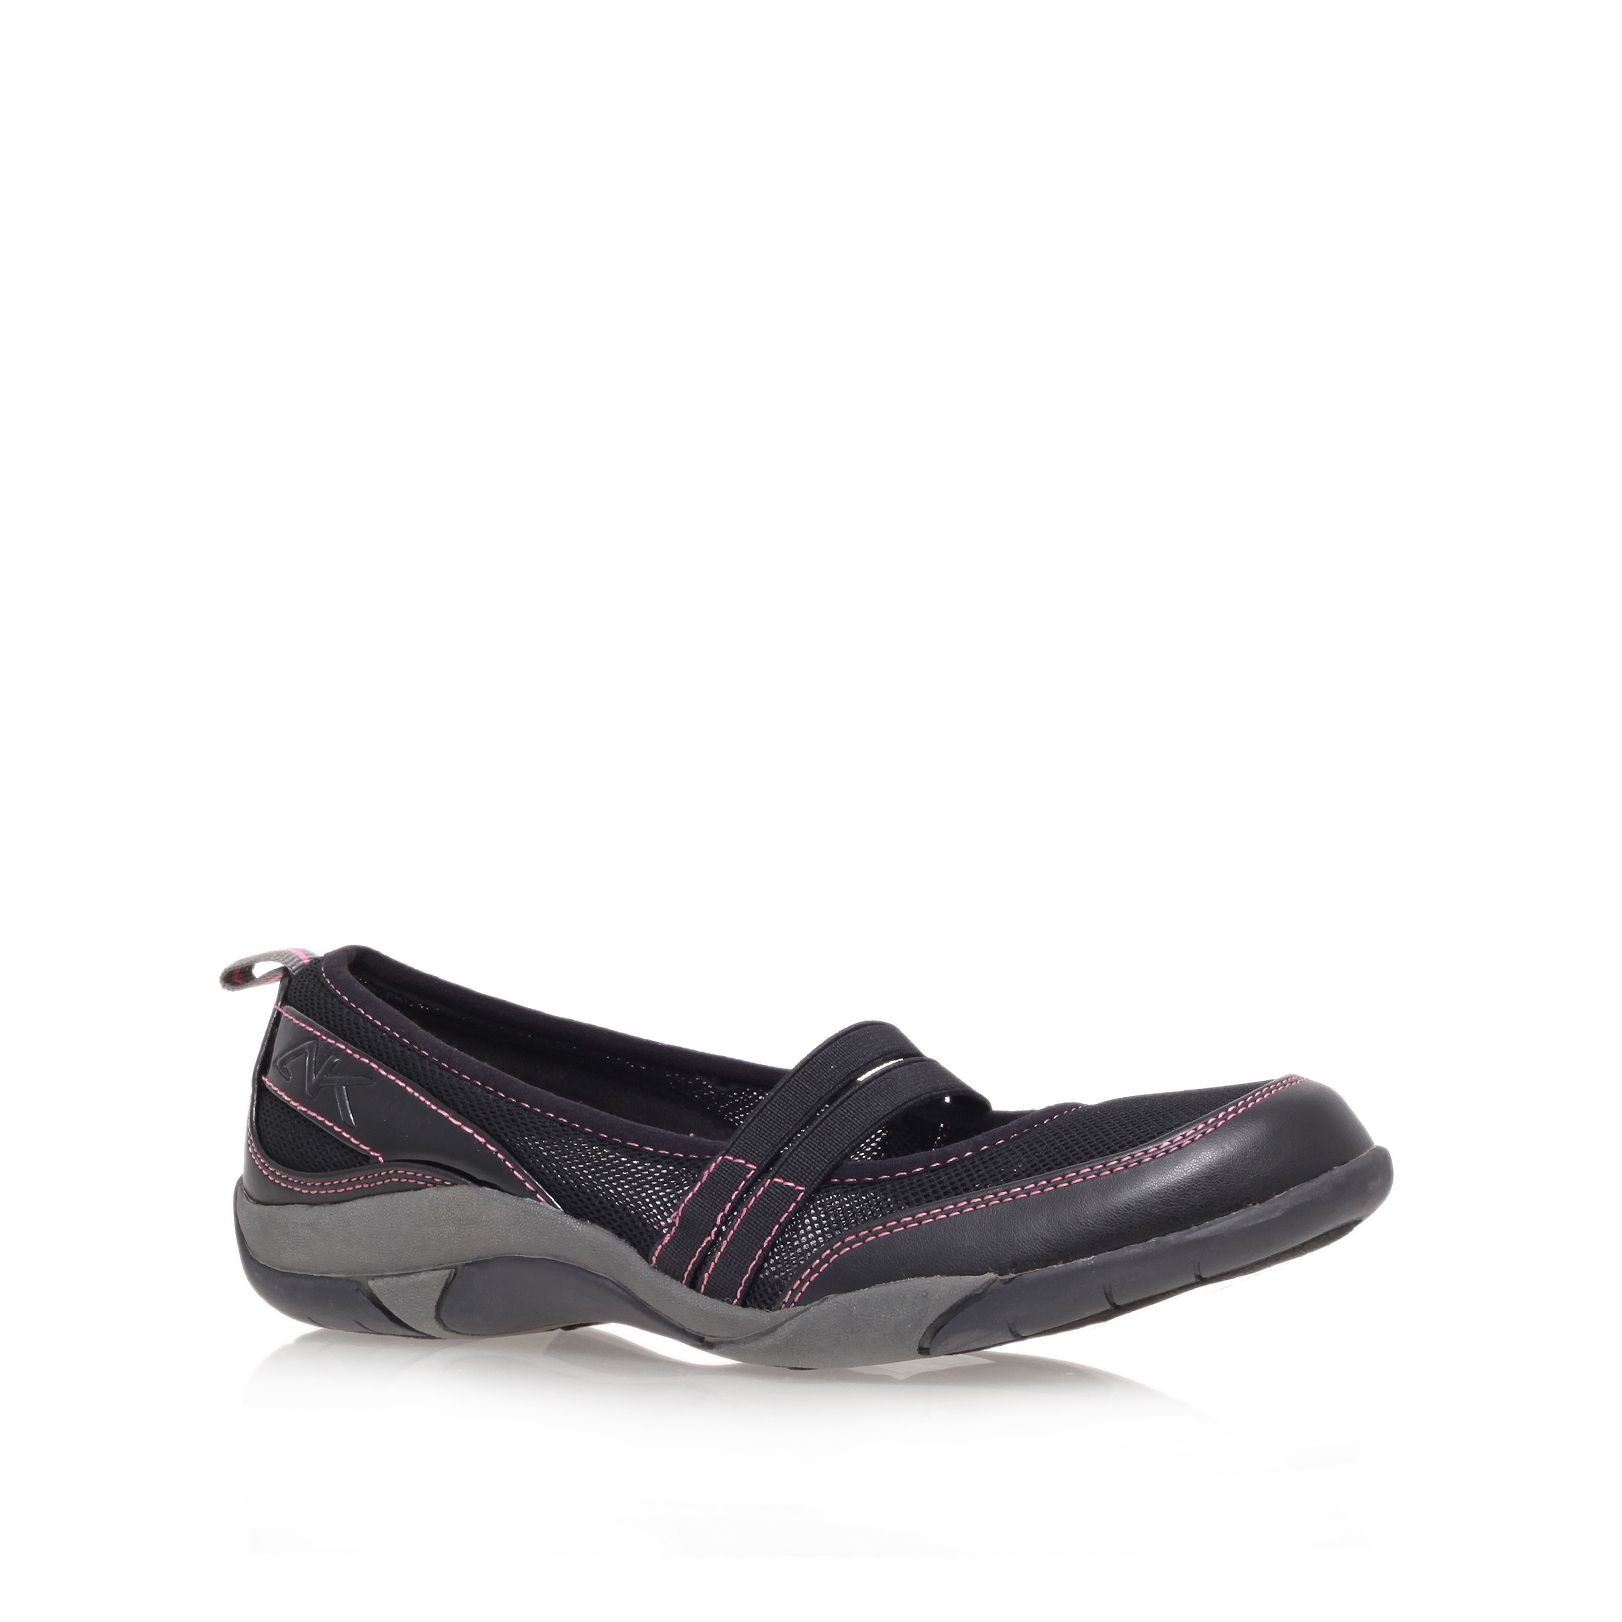 Unbridle flat slip-on shoes